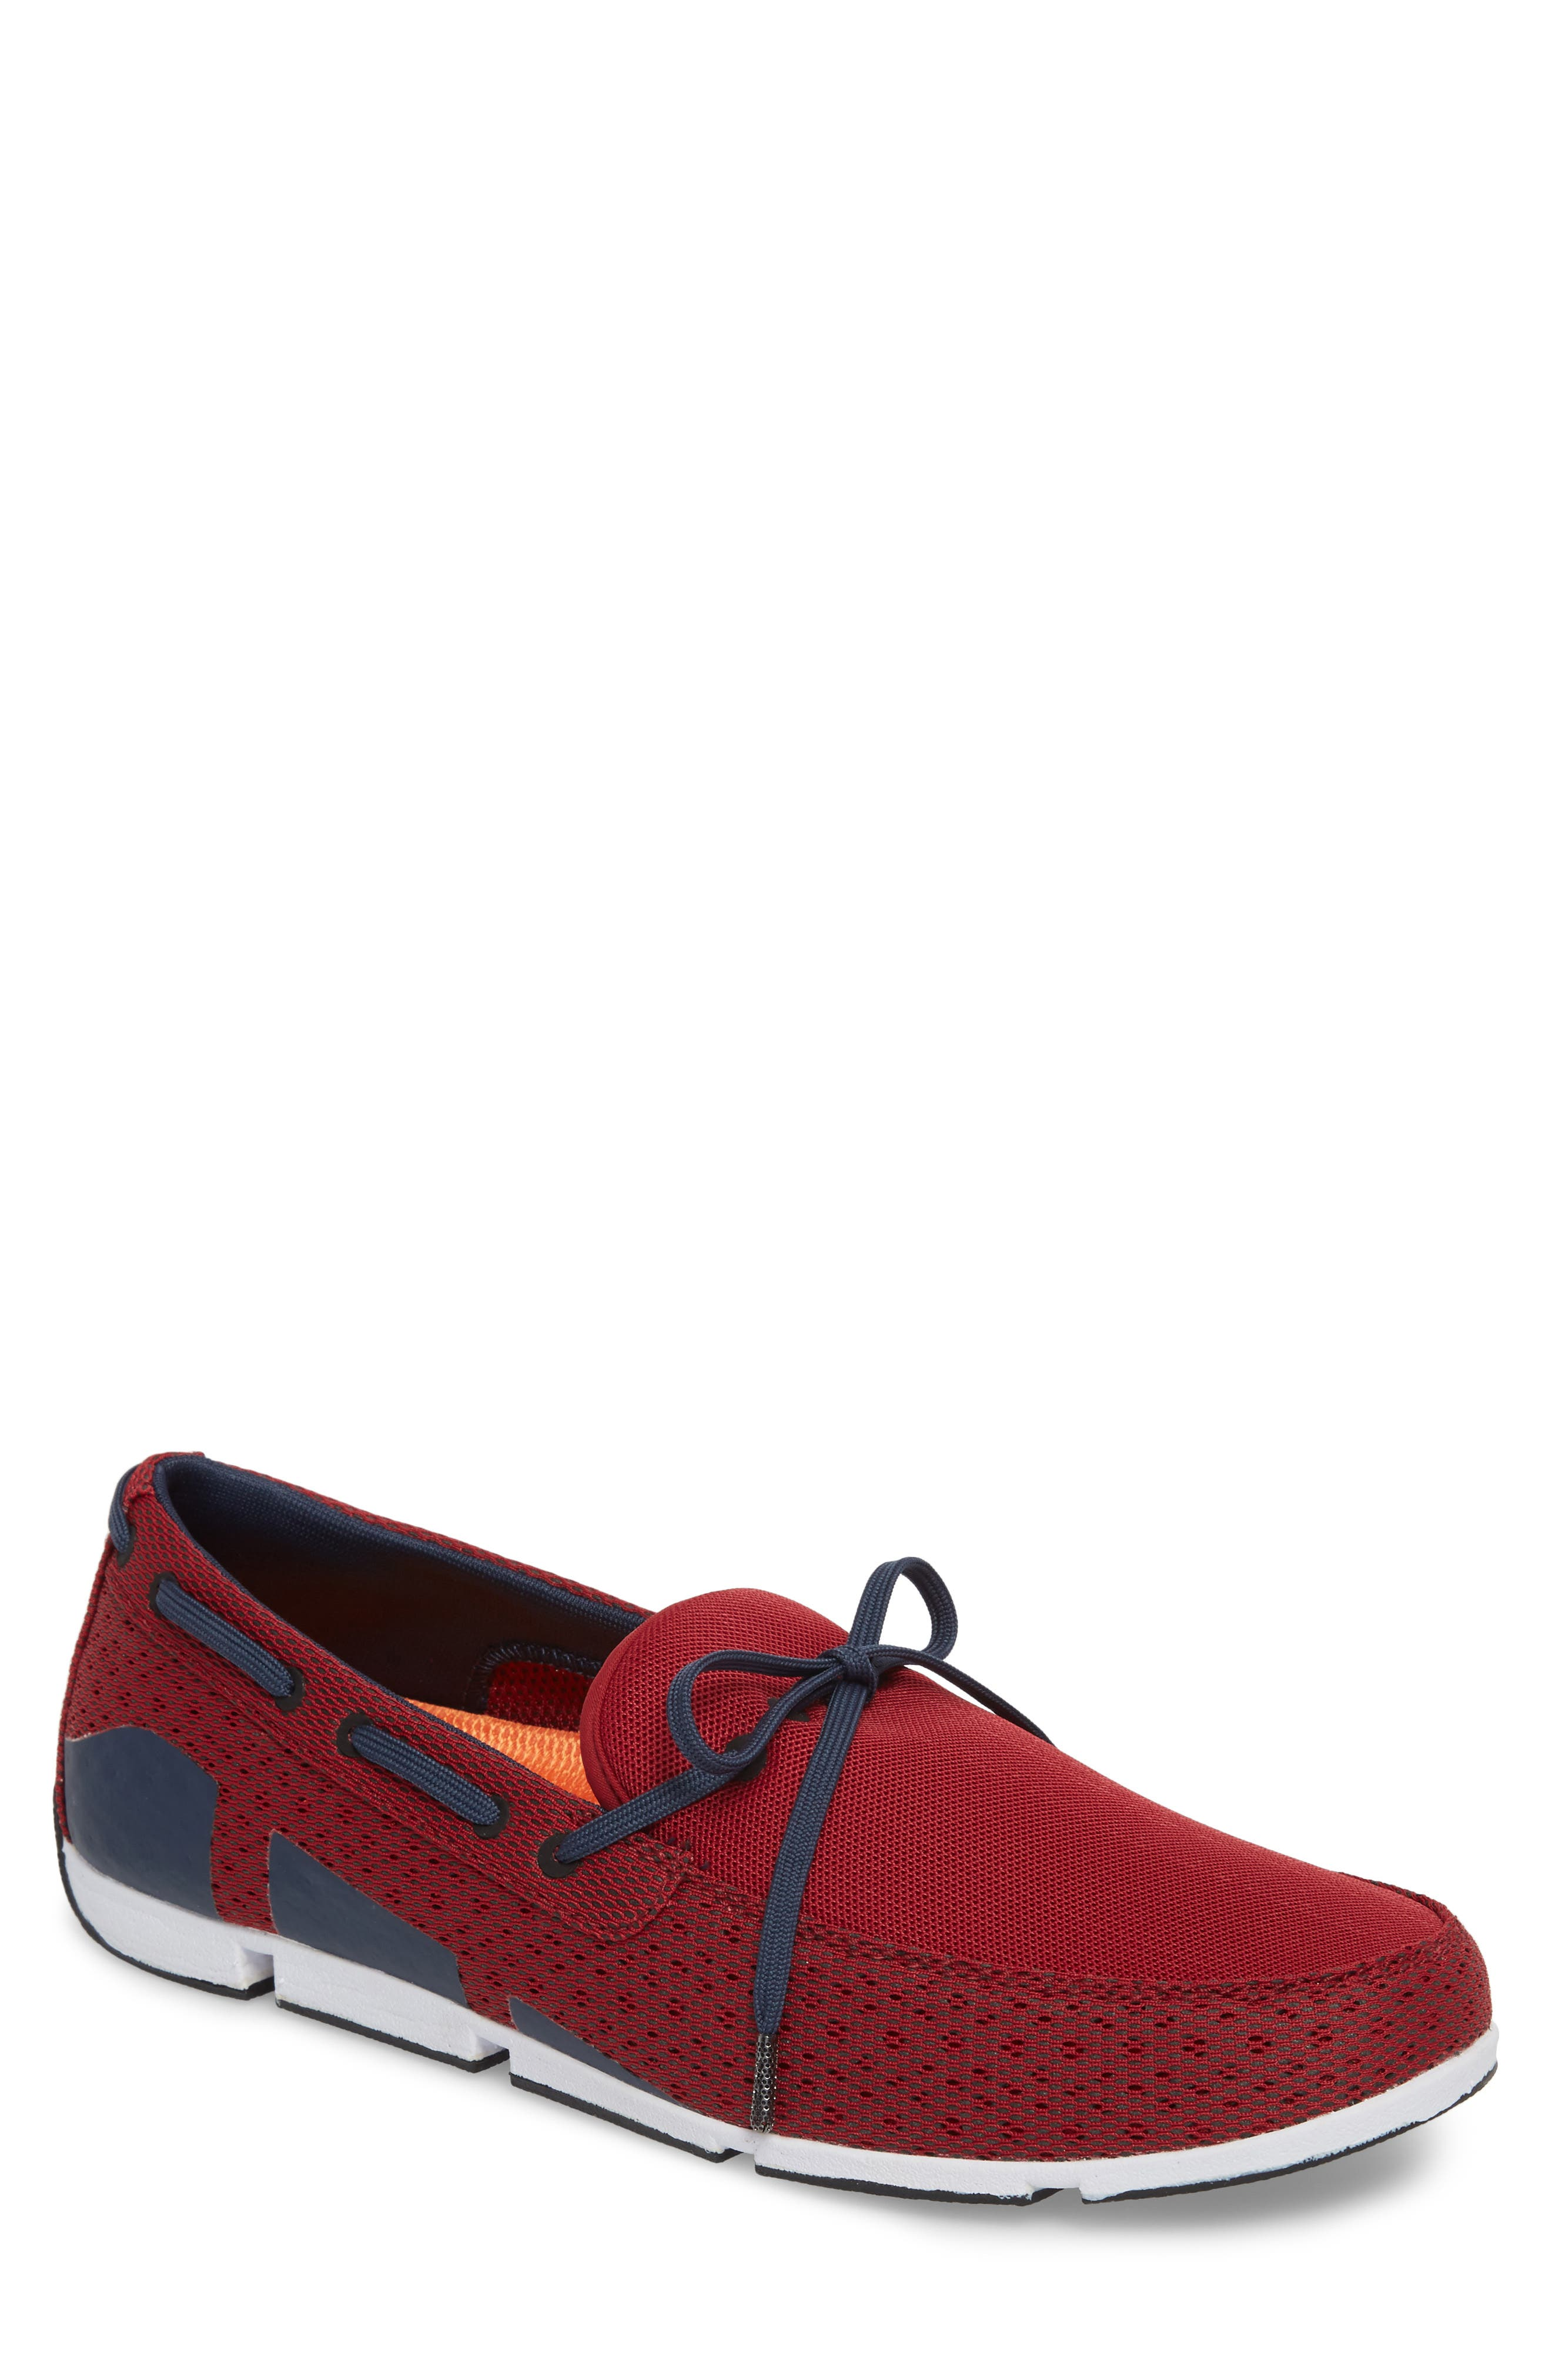 Breeze Loafer,                         Main,                         color, Deep Red/ Navy/ White